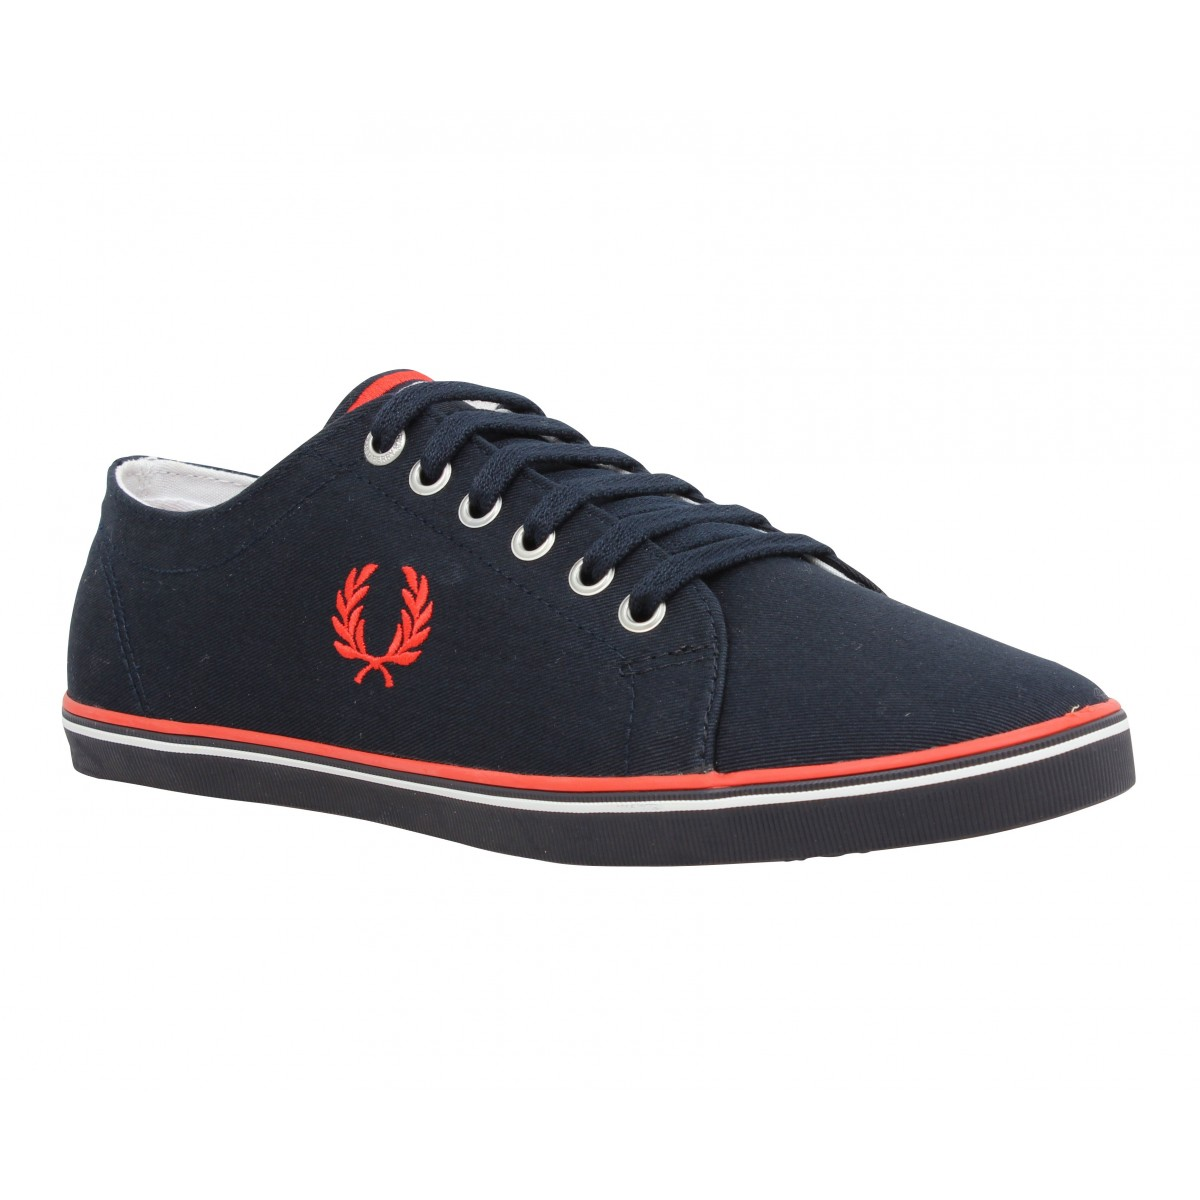 fred perry chaussures pour homme vente en ligne. Black Bedroom Furniture Sets. Home Design Ideas